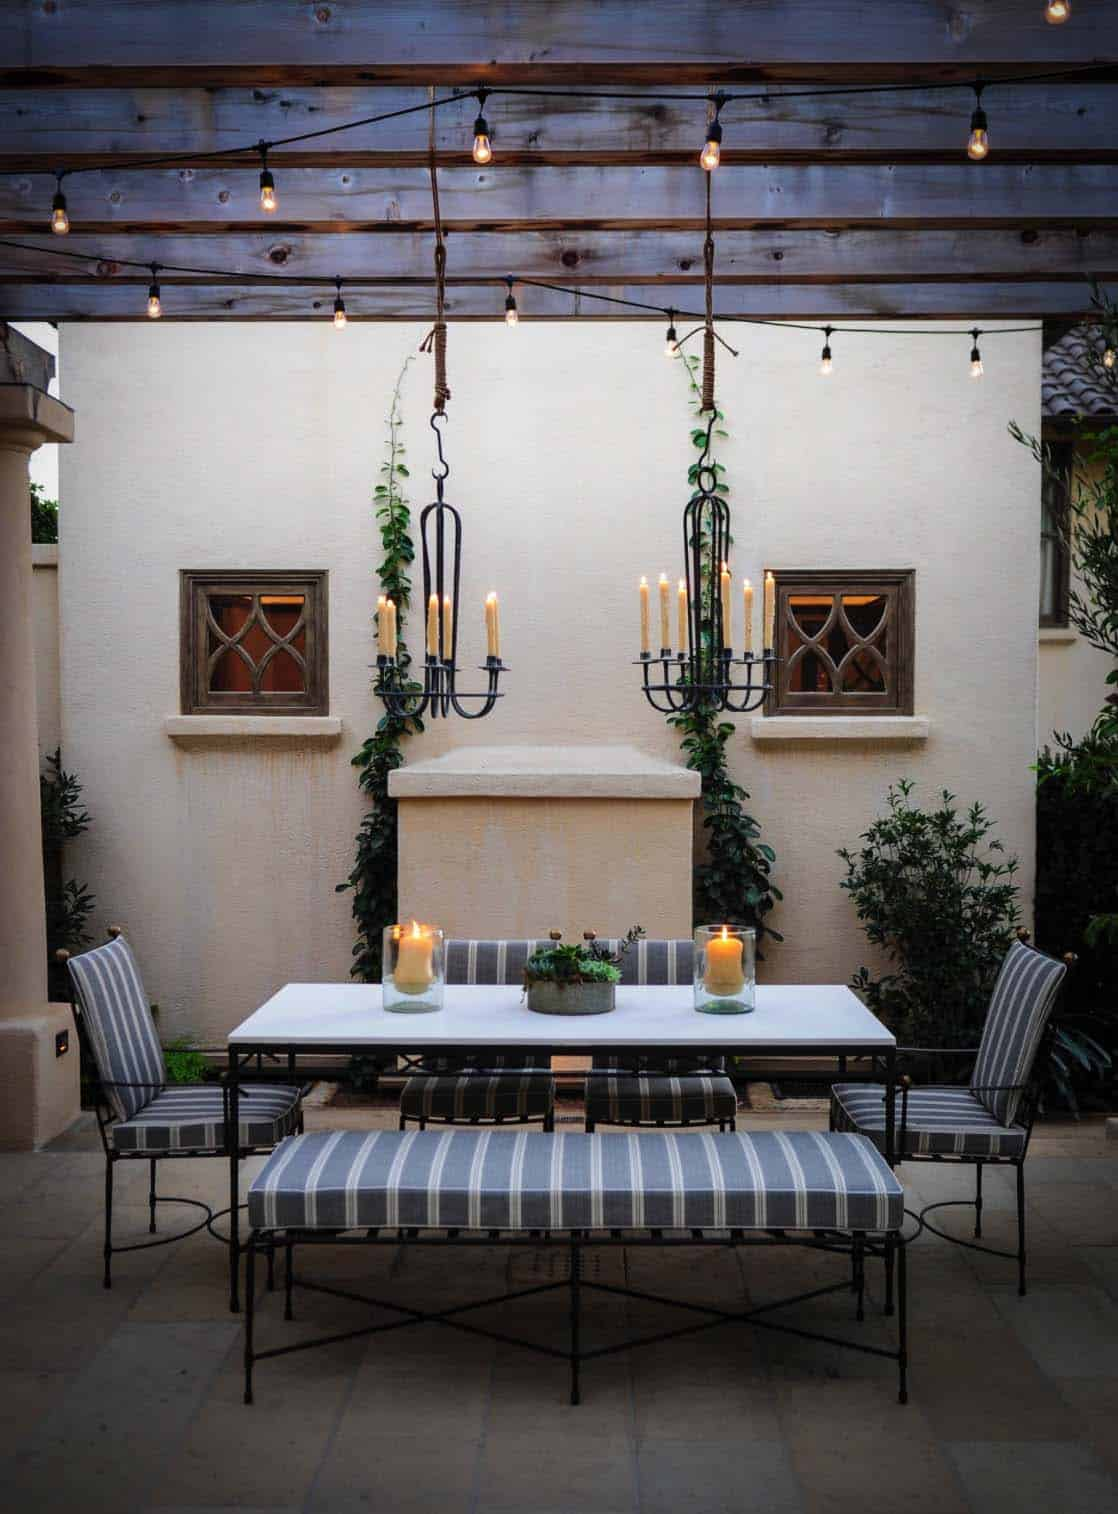 Inspiring String Light Ideas For Outdoors-18-1 Kindesign